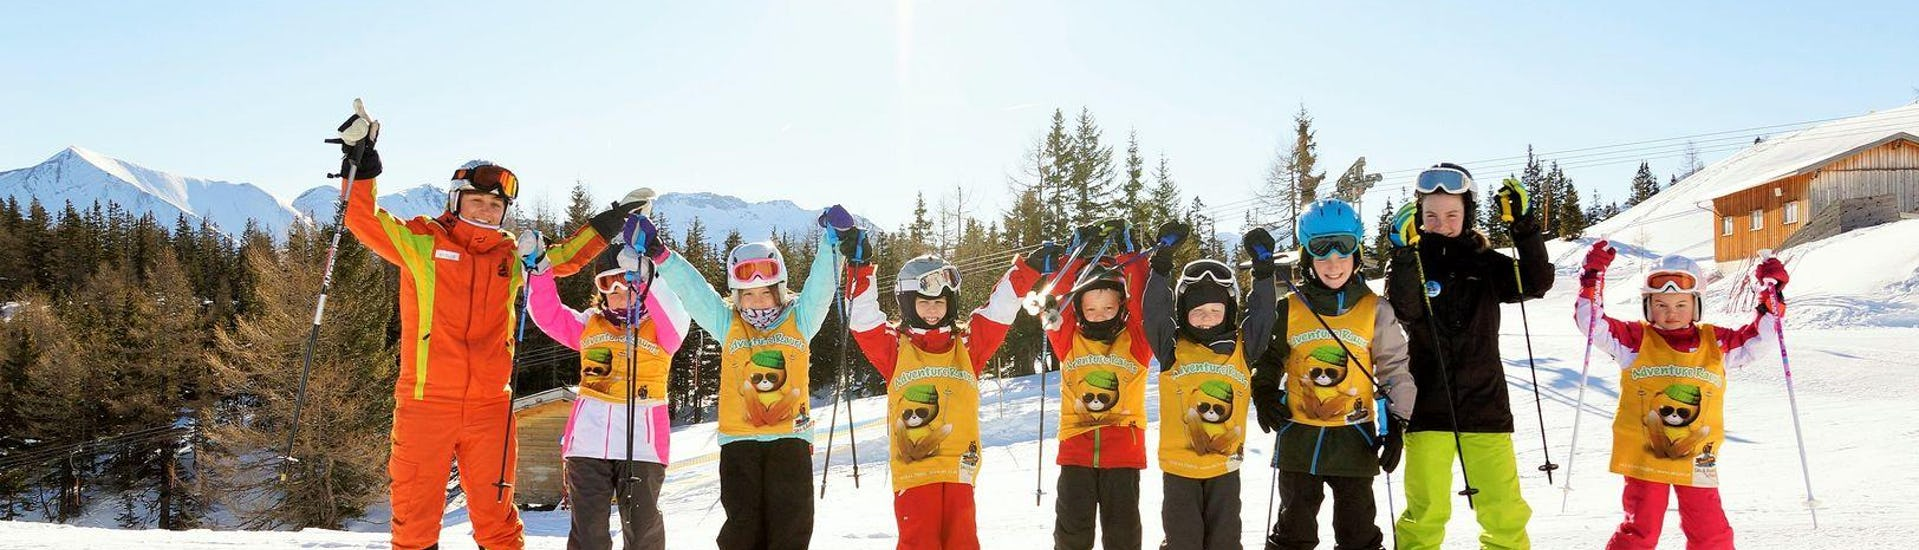 "Ski Lessons for Kids ""Full Day"" (4-16 years) - Advanced"